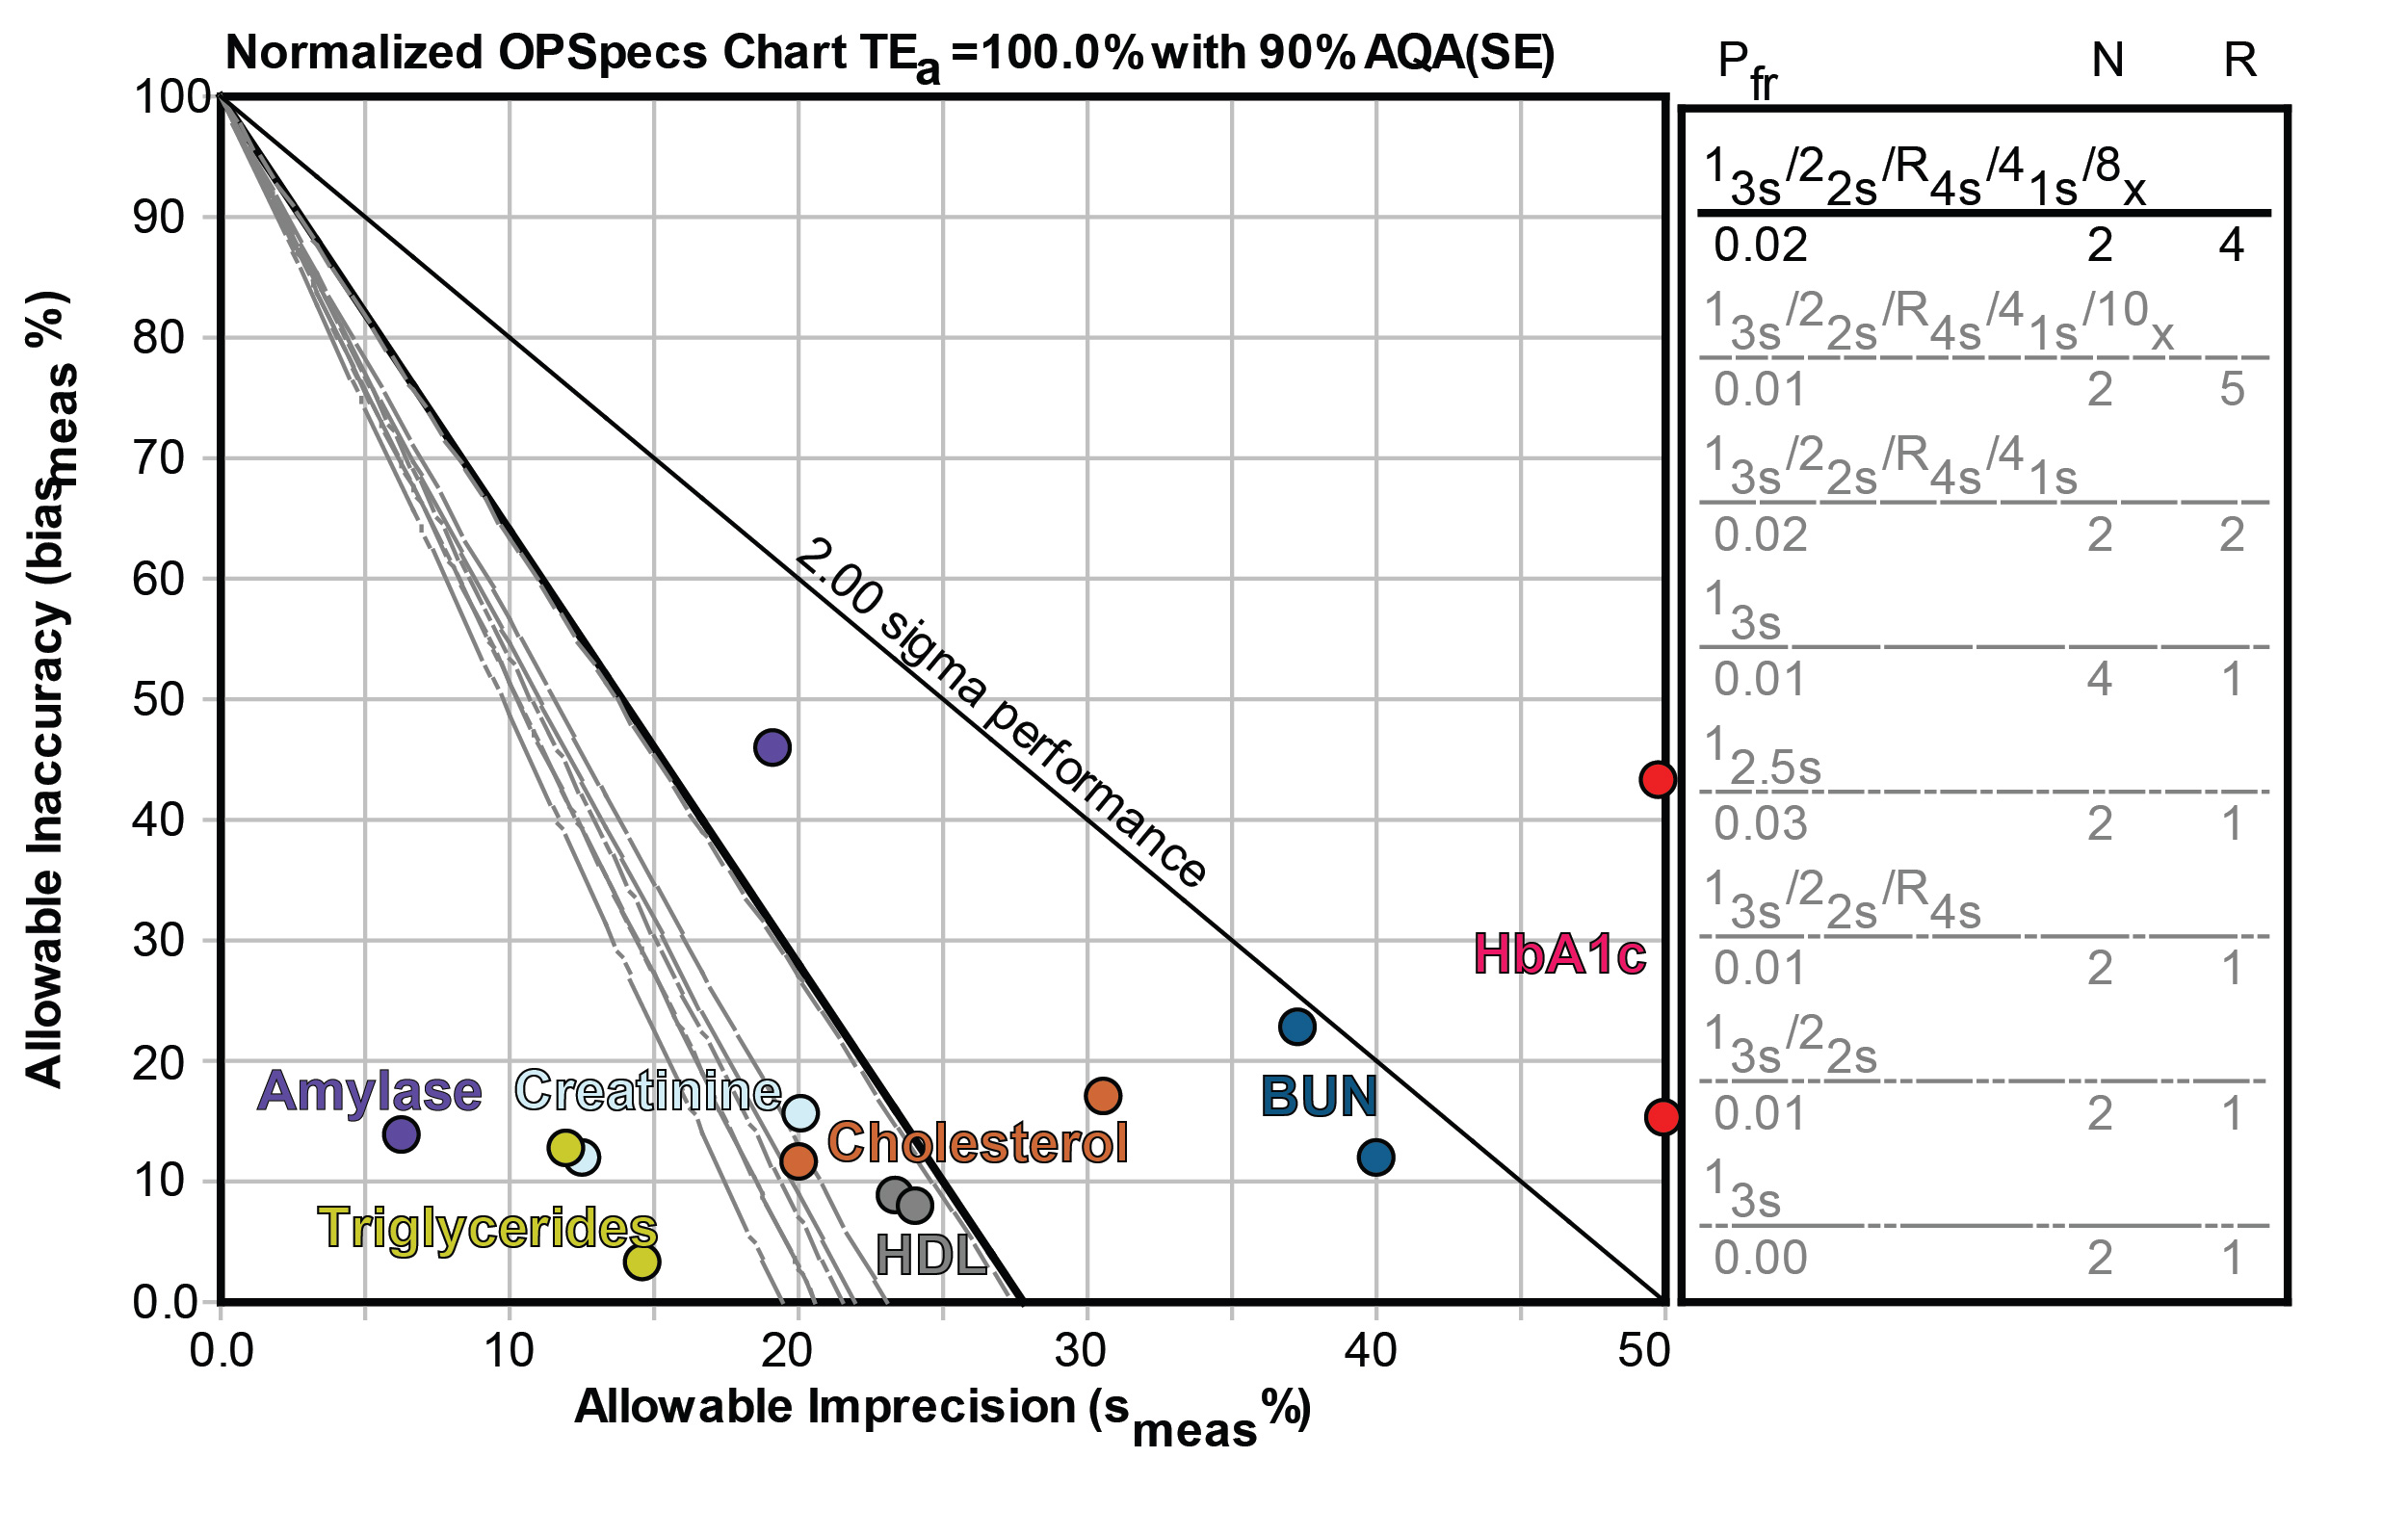 Normalizezd OPSpecs chart for a POC chemistry analyzer